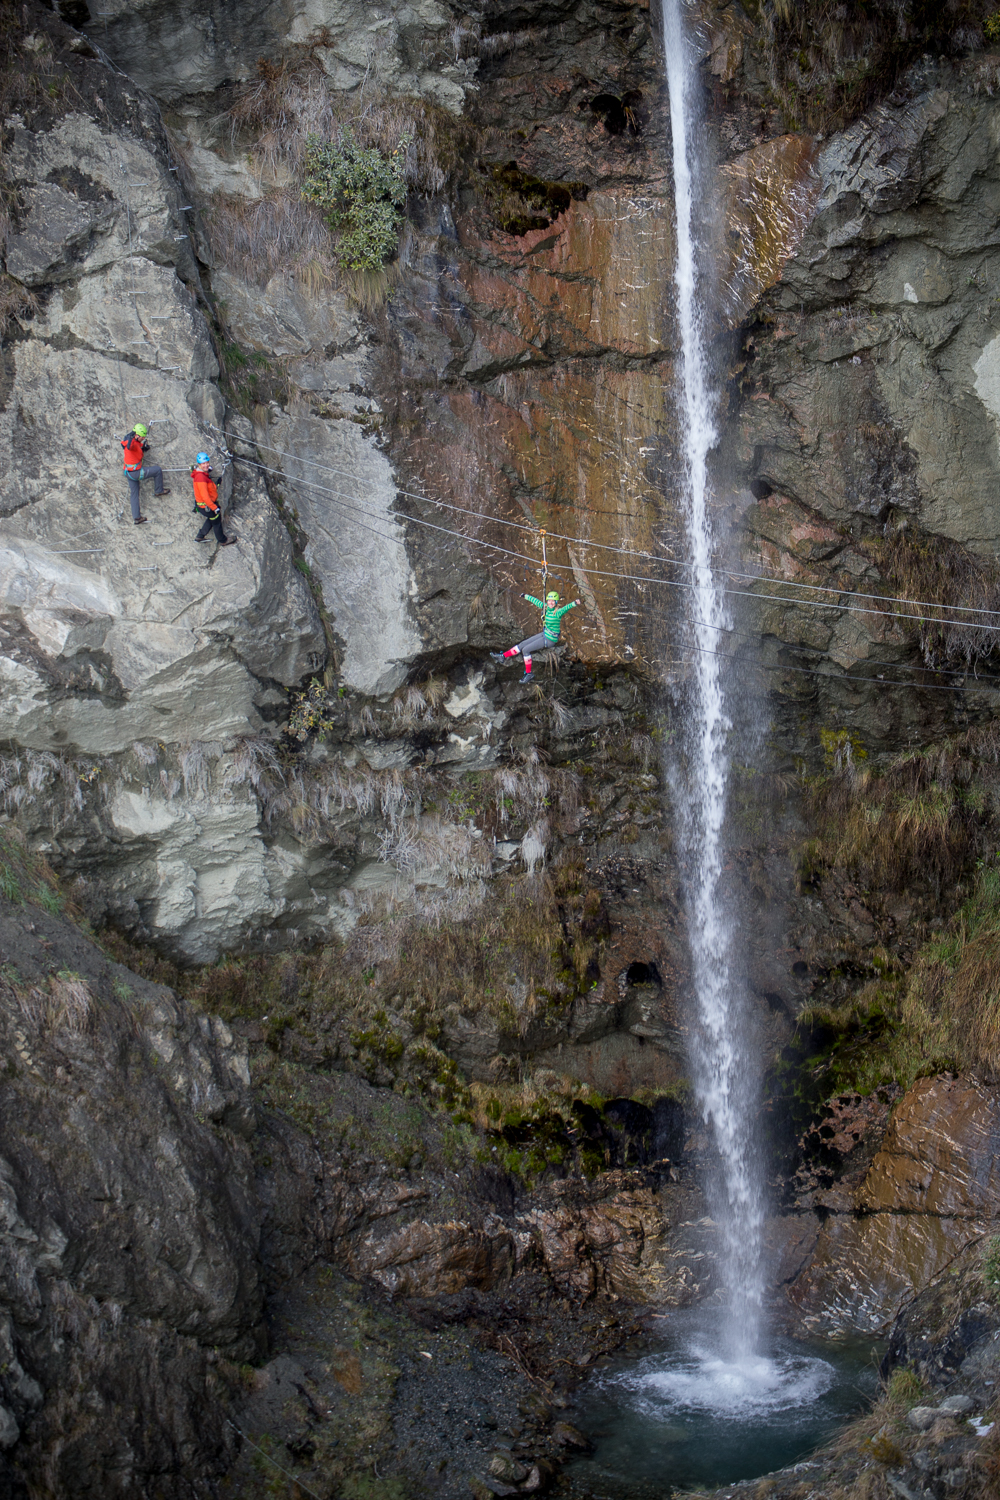 Reaching the bottom of the via ferrata